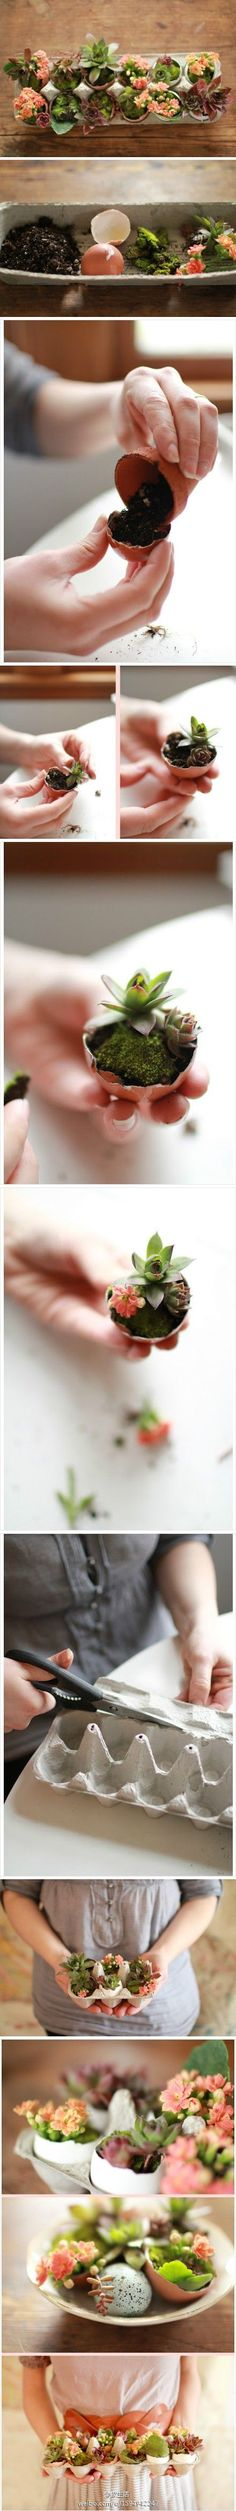 DIY this cute and eco-friendly garden.